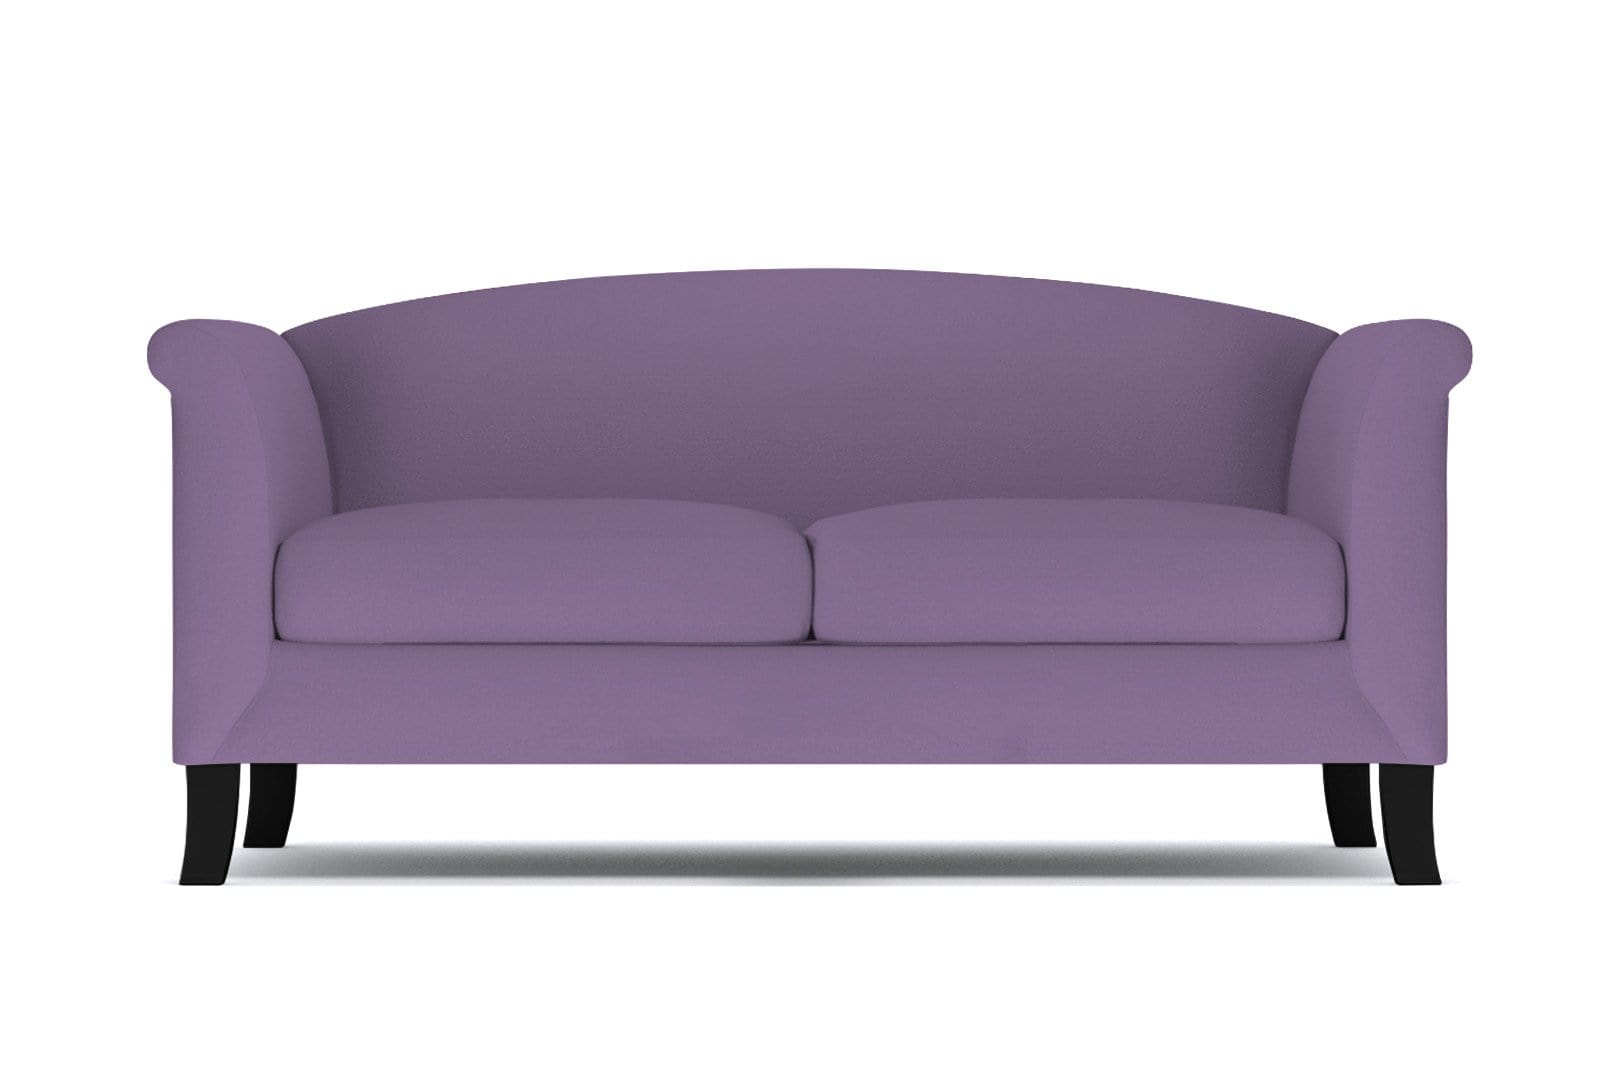 Albright_Apartment_Size_Sofa__Purple_Velvet___Small_Space_Modern_Couch_Made_in_the_USA__Sold_by_Apt2B